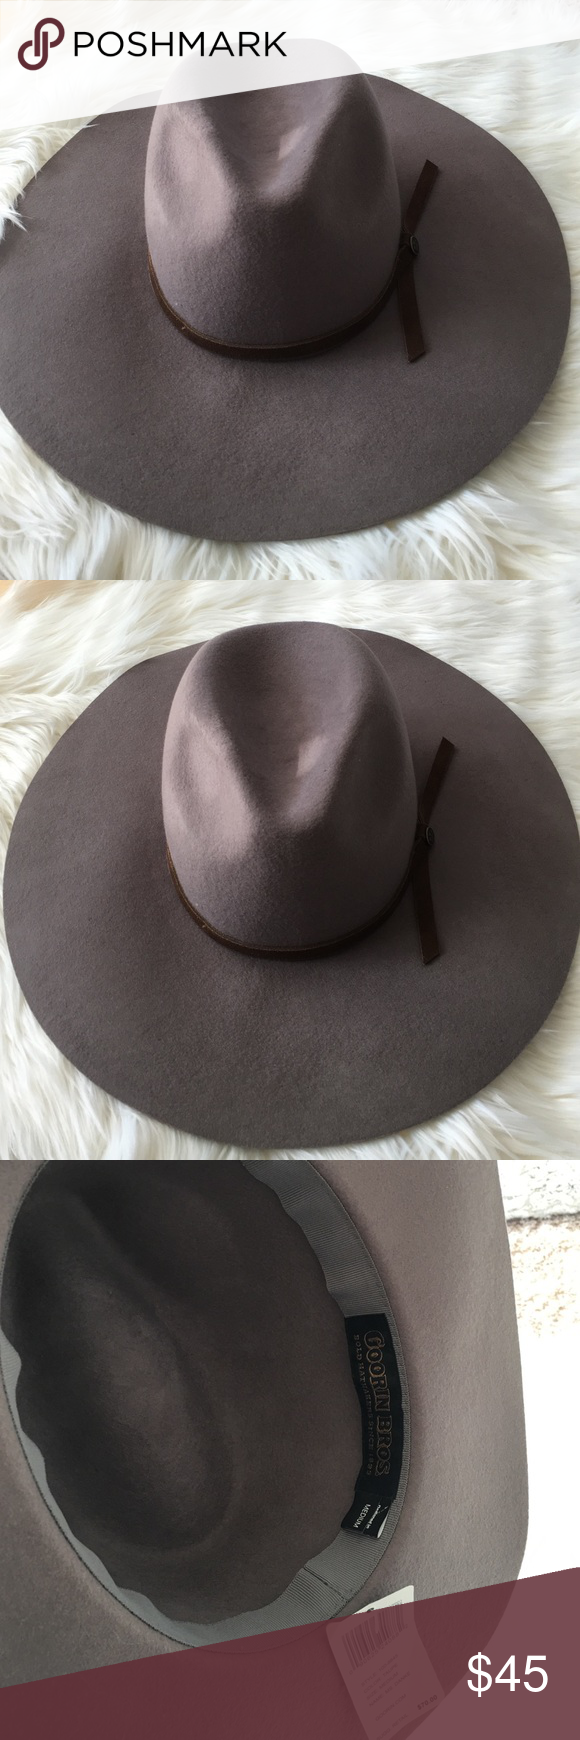 fa212c8b2d0 Goorin Bros Ms. Danke Hat - Never Worn An amazing statement hat from one of  my favorite NYC hat stores Goorin Bros a bold hat maker since 1895 in Taupe  ...